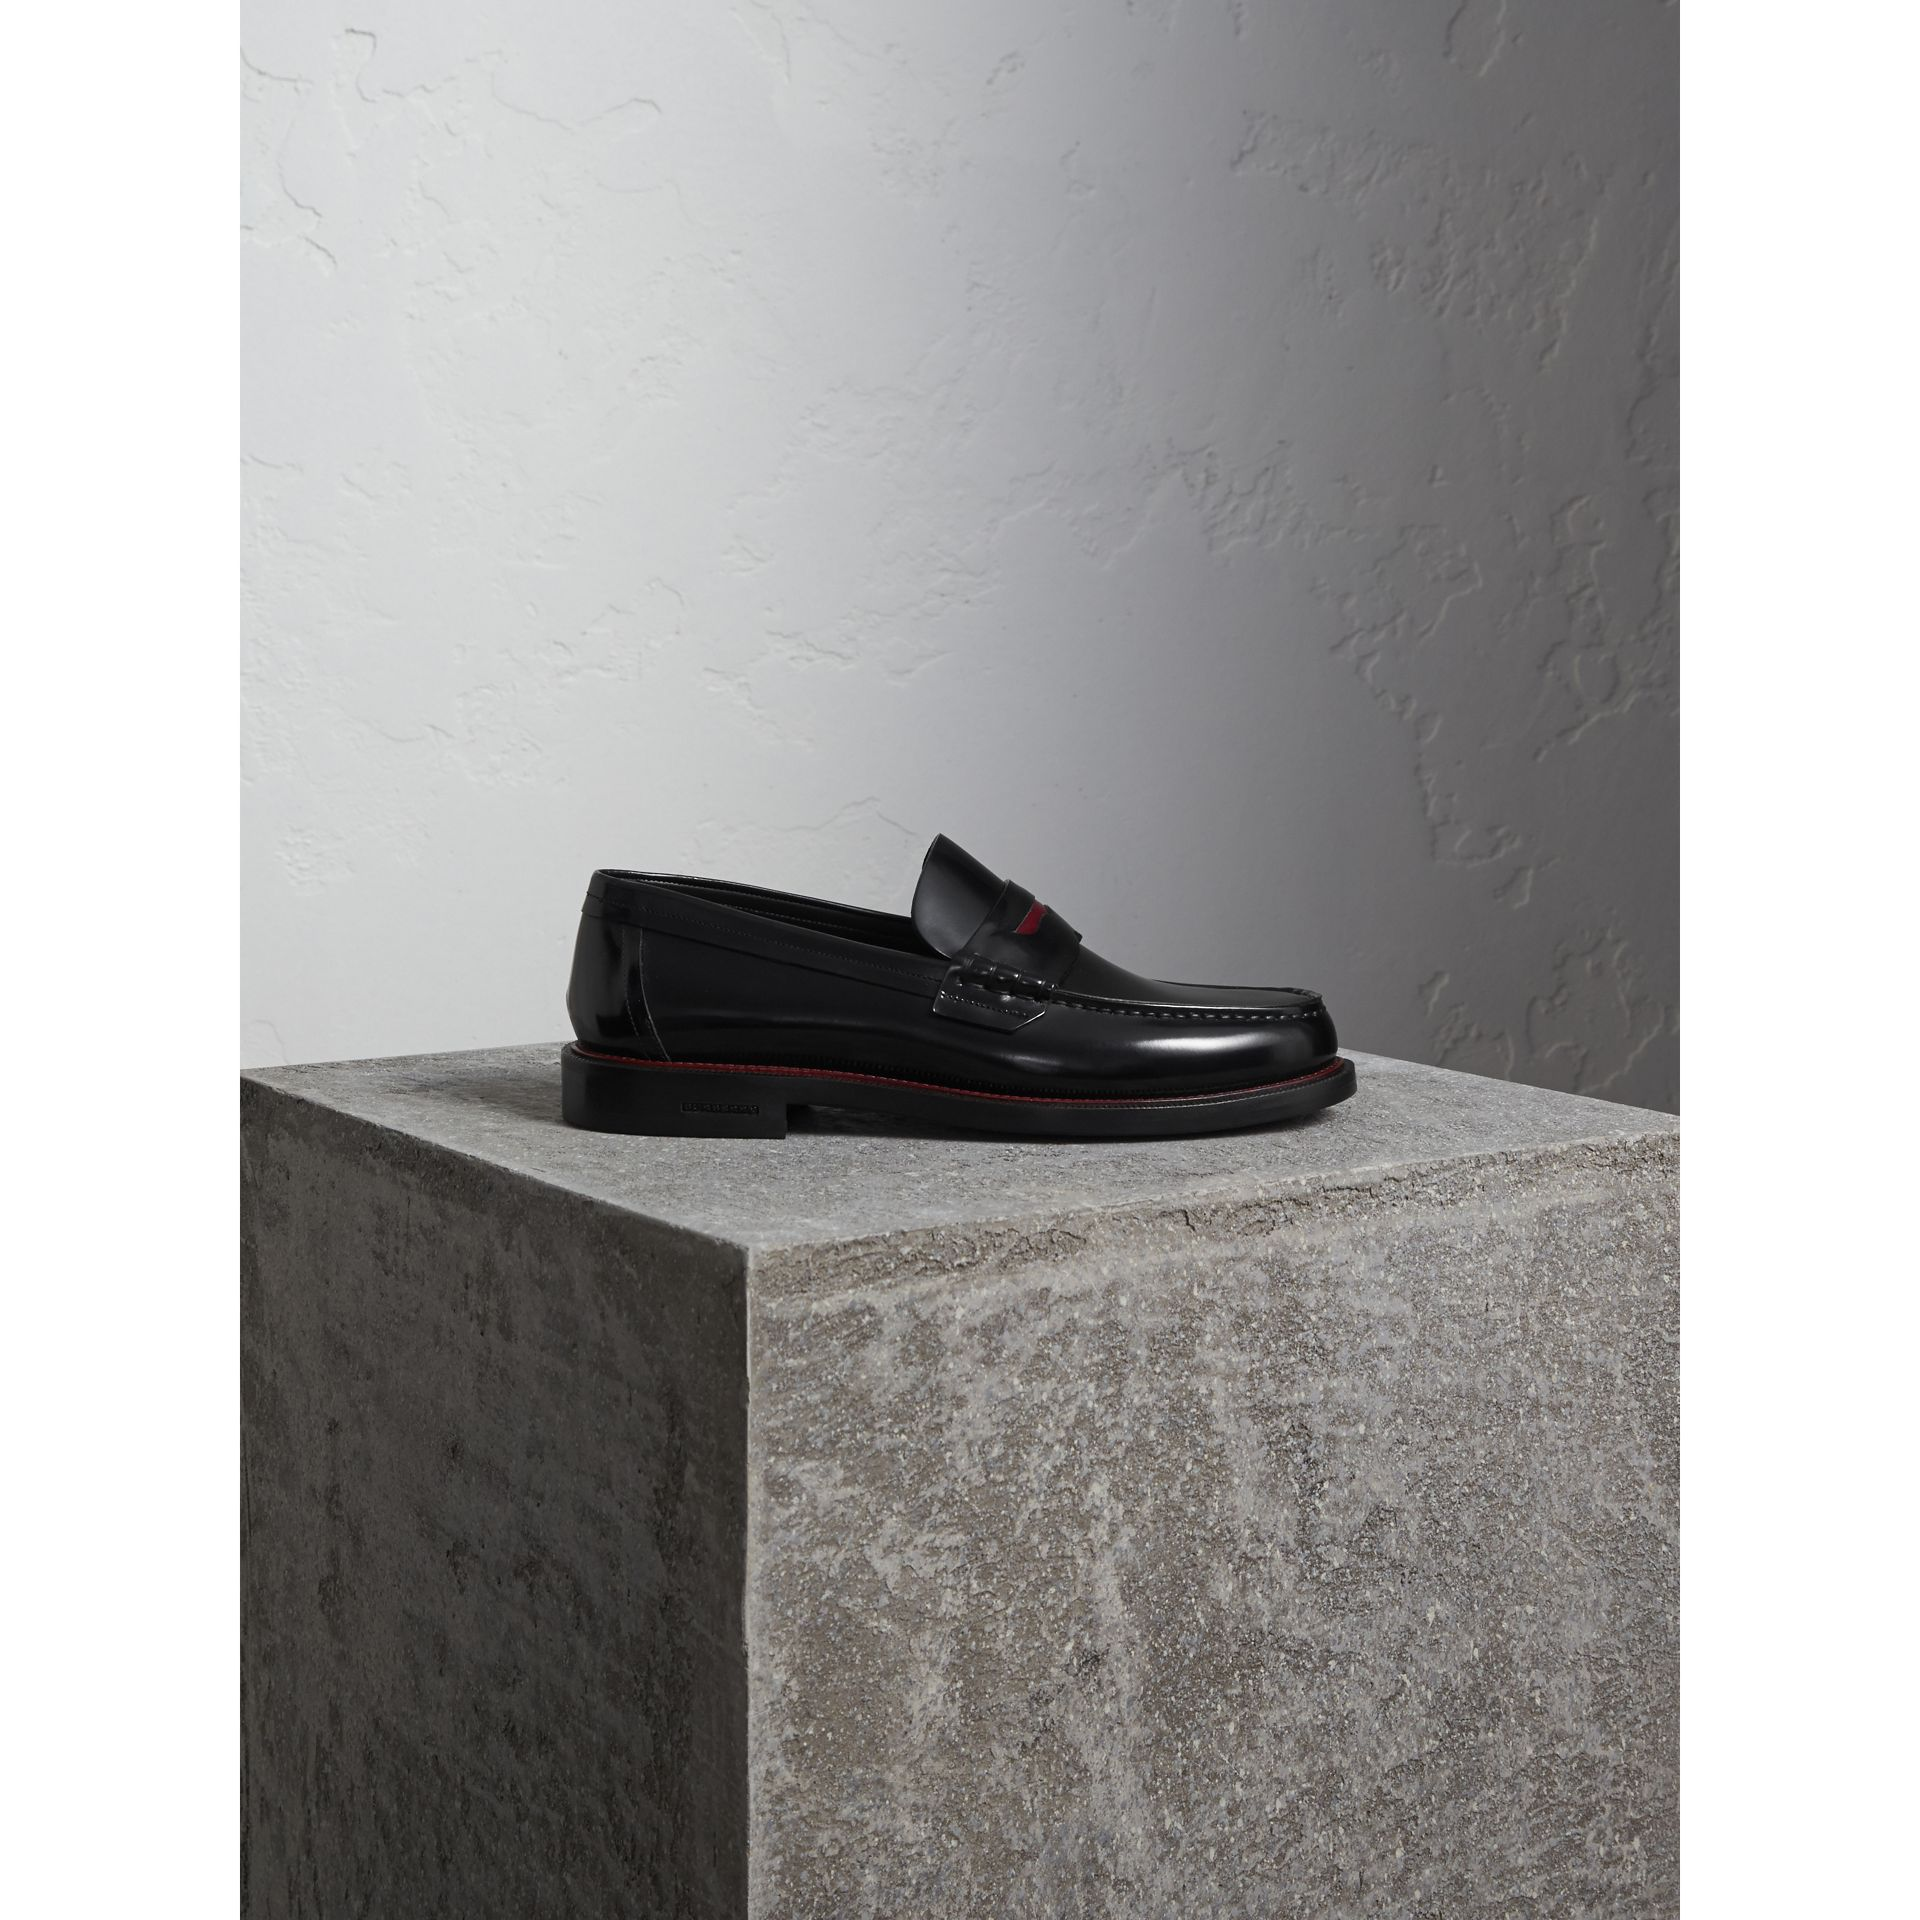 Two-tone Leather Penny Loafers in Black - Men | Burberry United States - gallery image 1